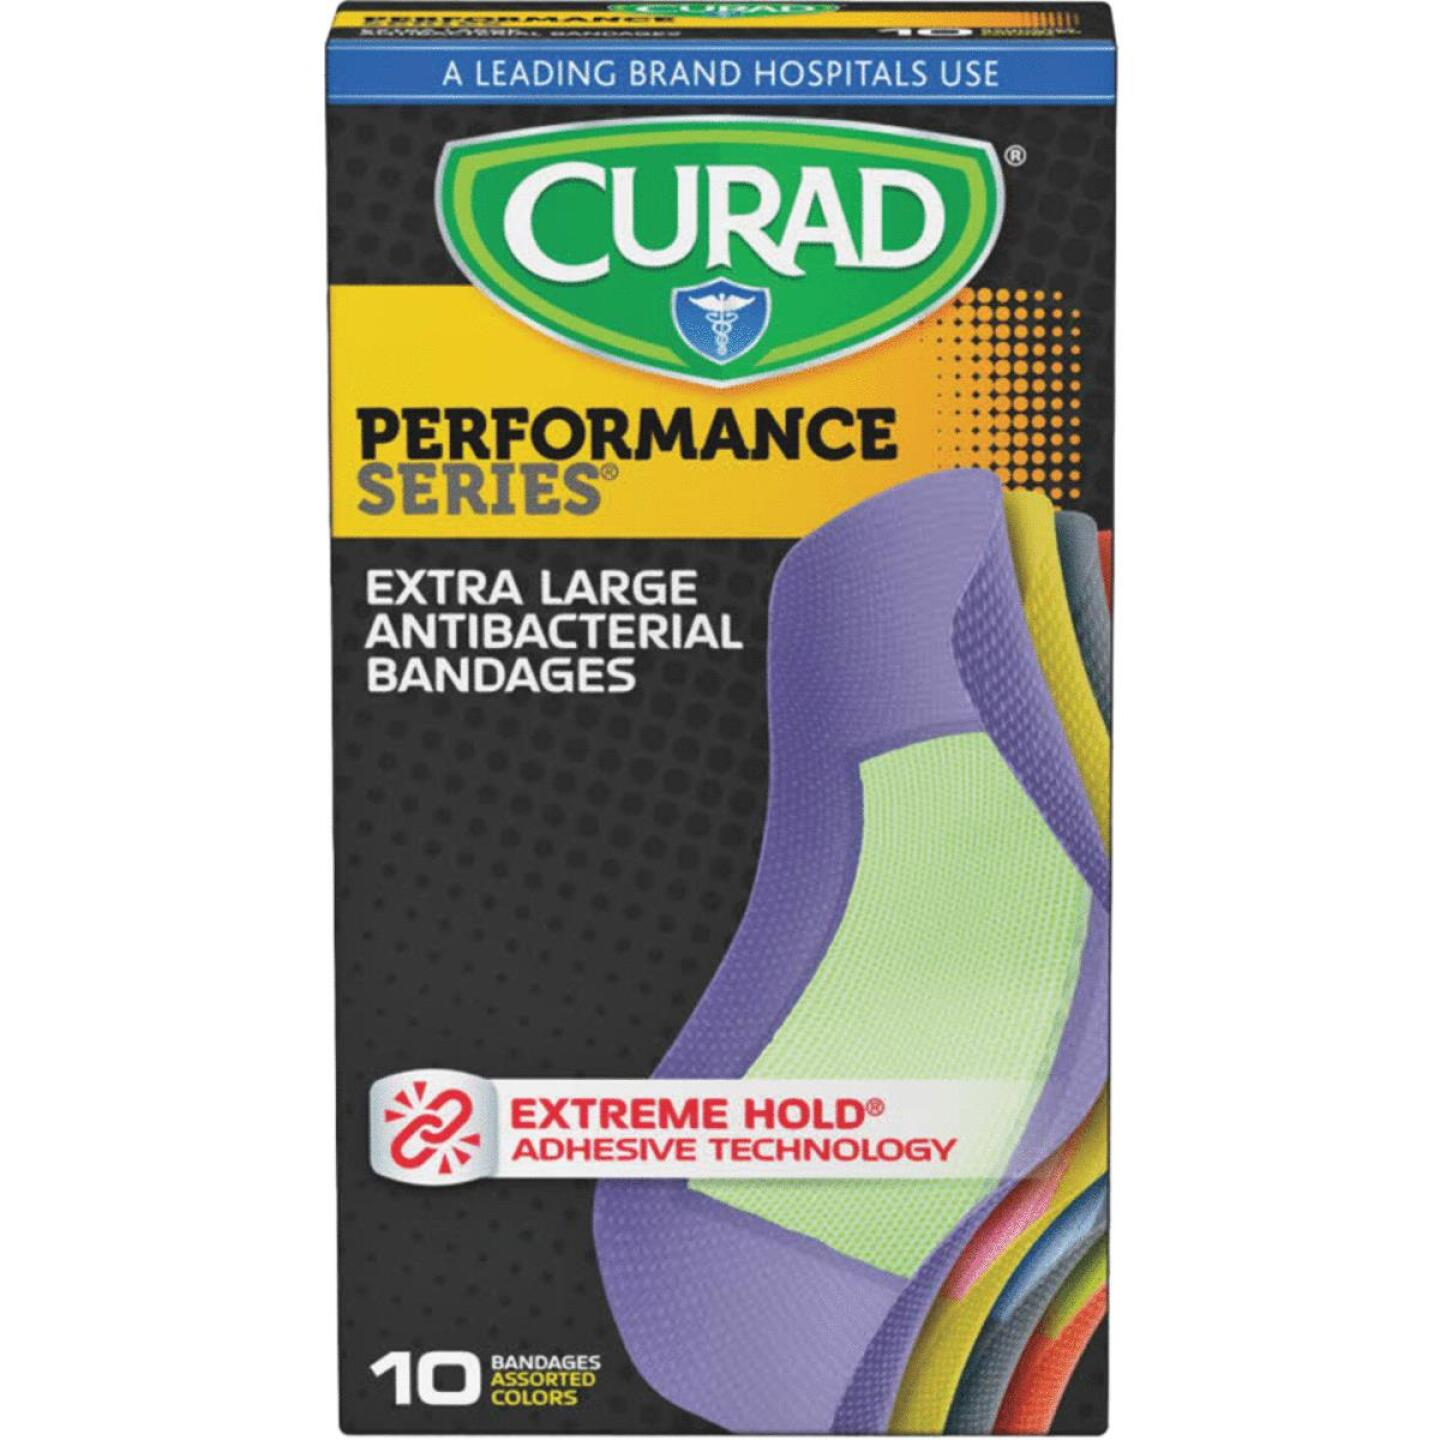 Curad Performance Series Antibacterial Bandages, XL, 2 In. x 4 In., Assorted Colors (10 Ct) Image 1